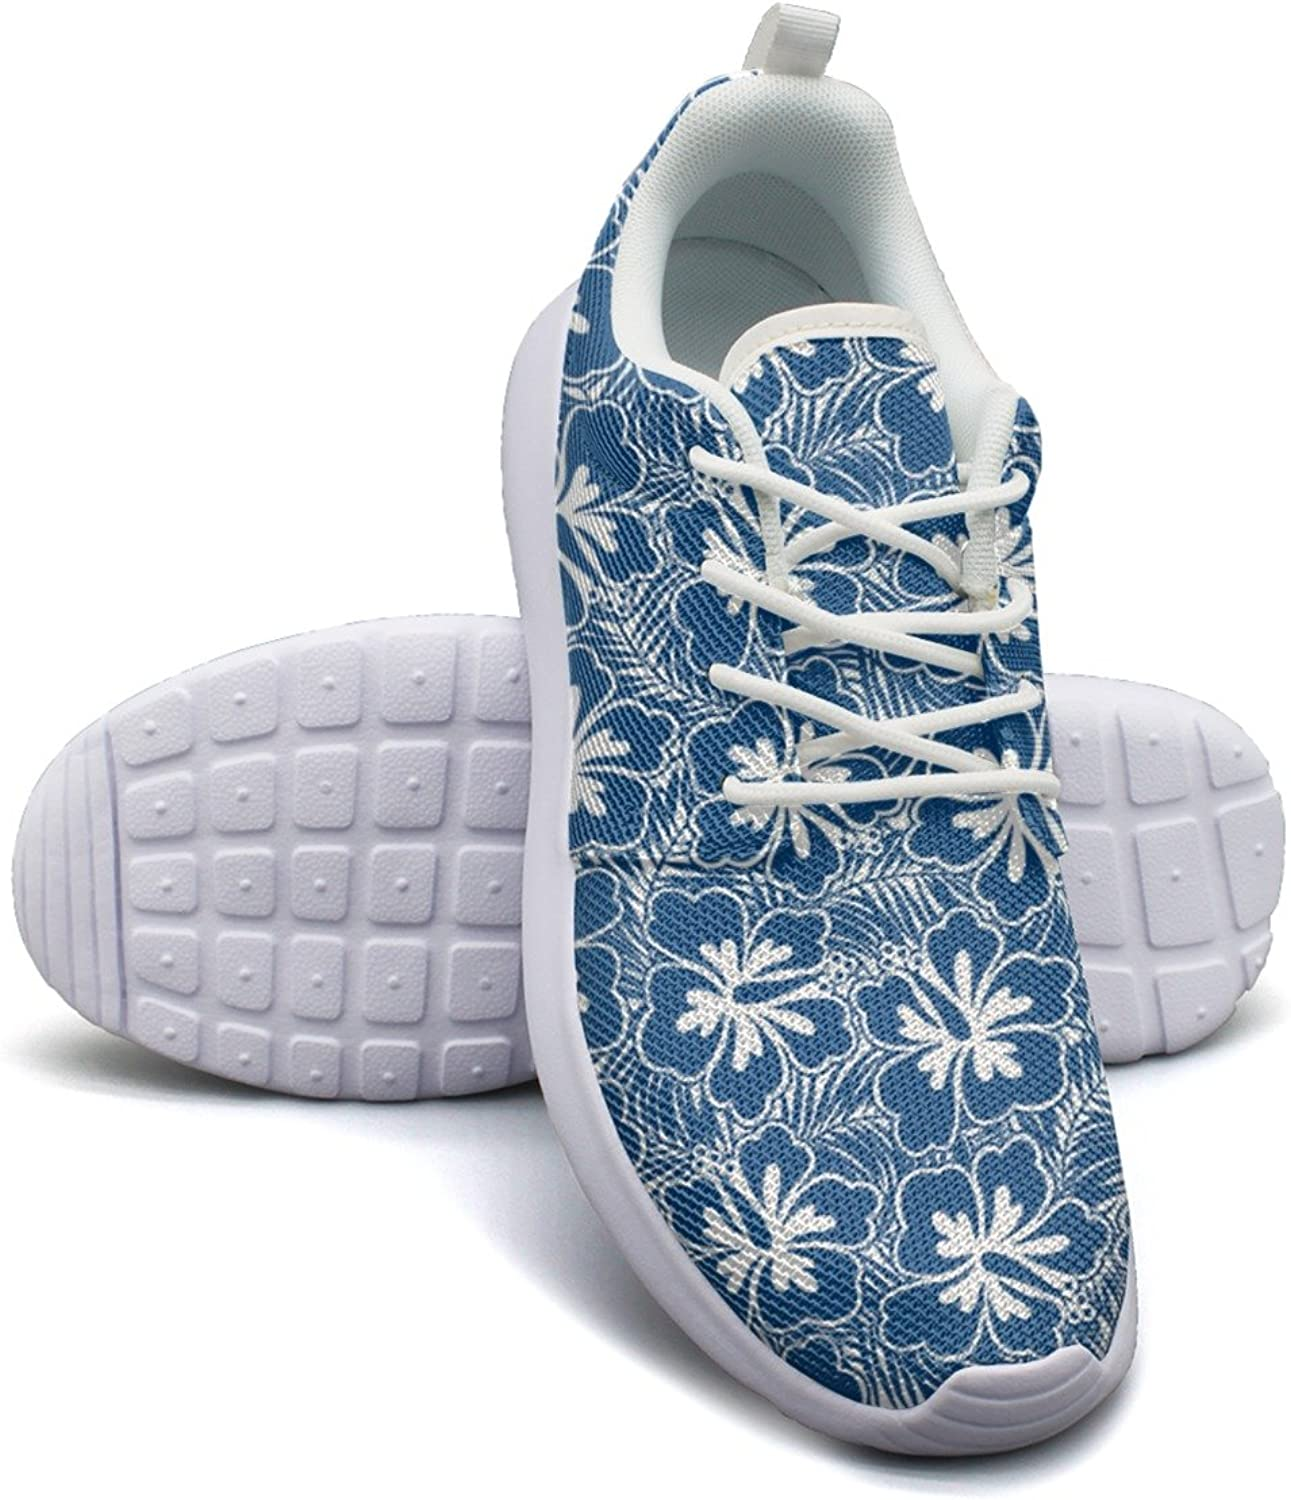 Hibiscus bluee Flowers And Tropical Leaves Women's Fashion Tennis shoes Hip Hop Mesh Lightweight Tennis Sneakers